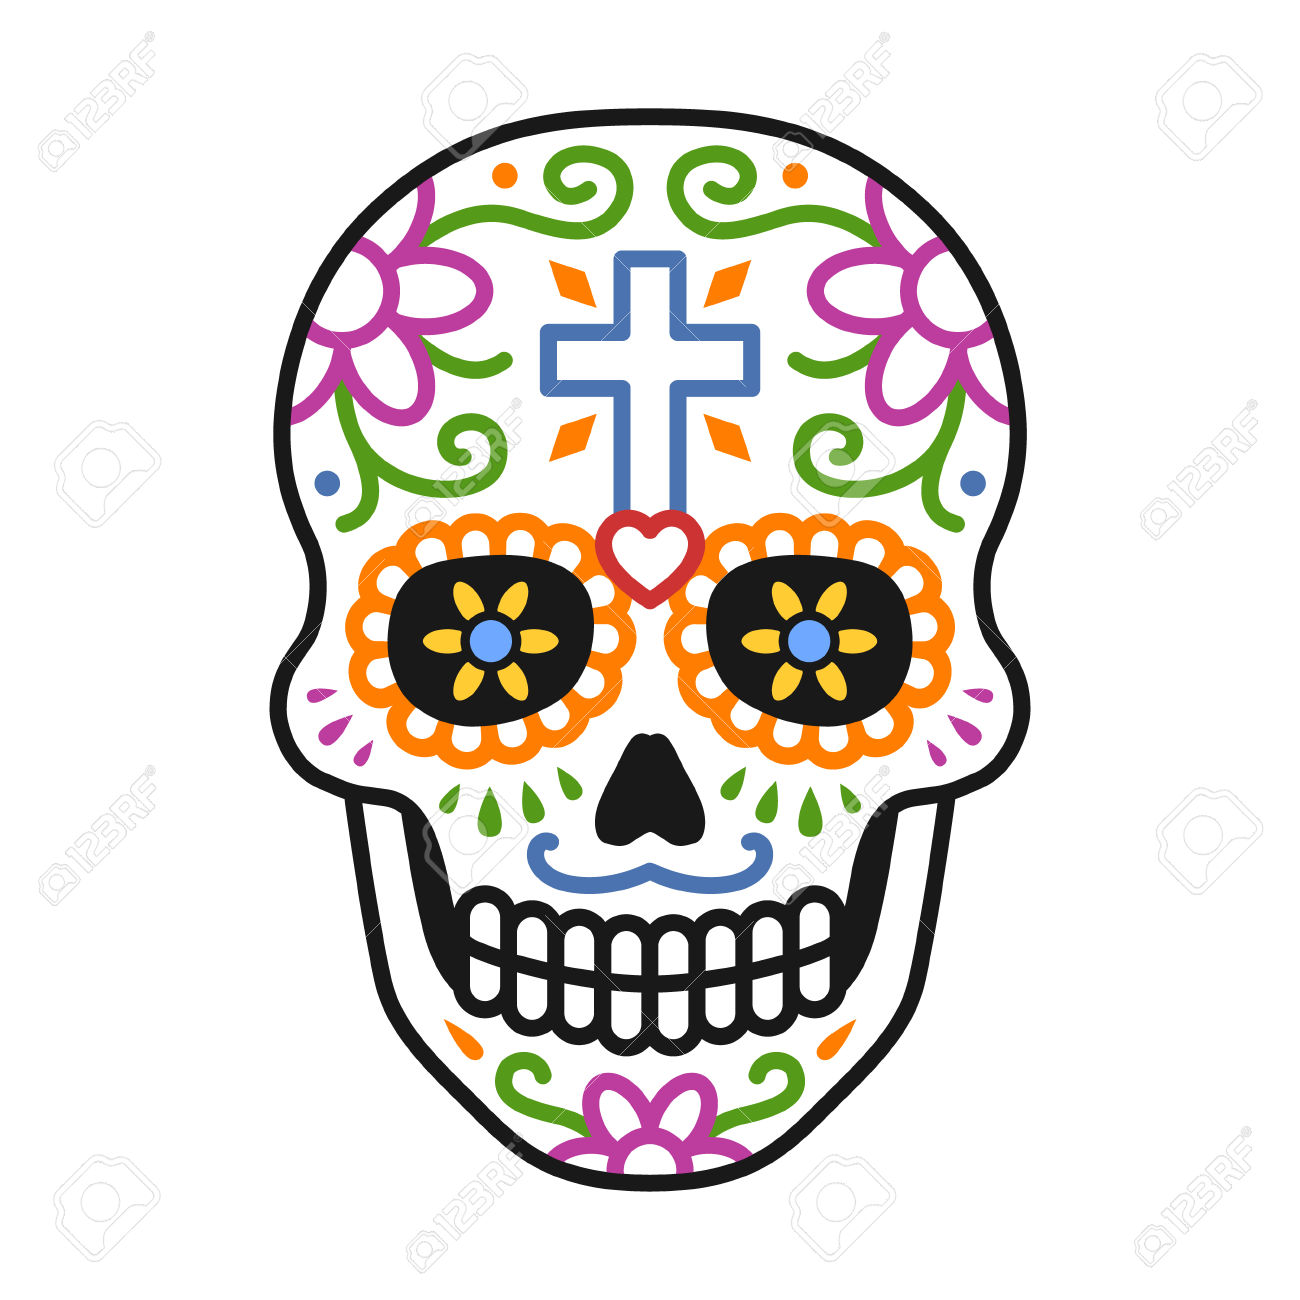 hight resolution of decorated skull calavera celebrating day of the dead line